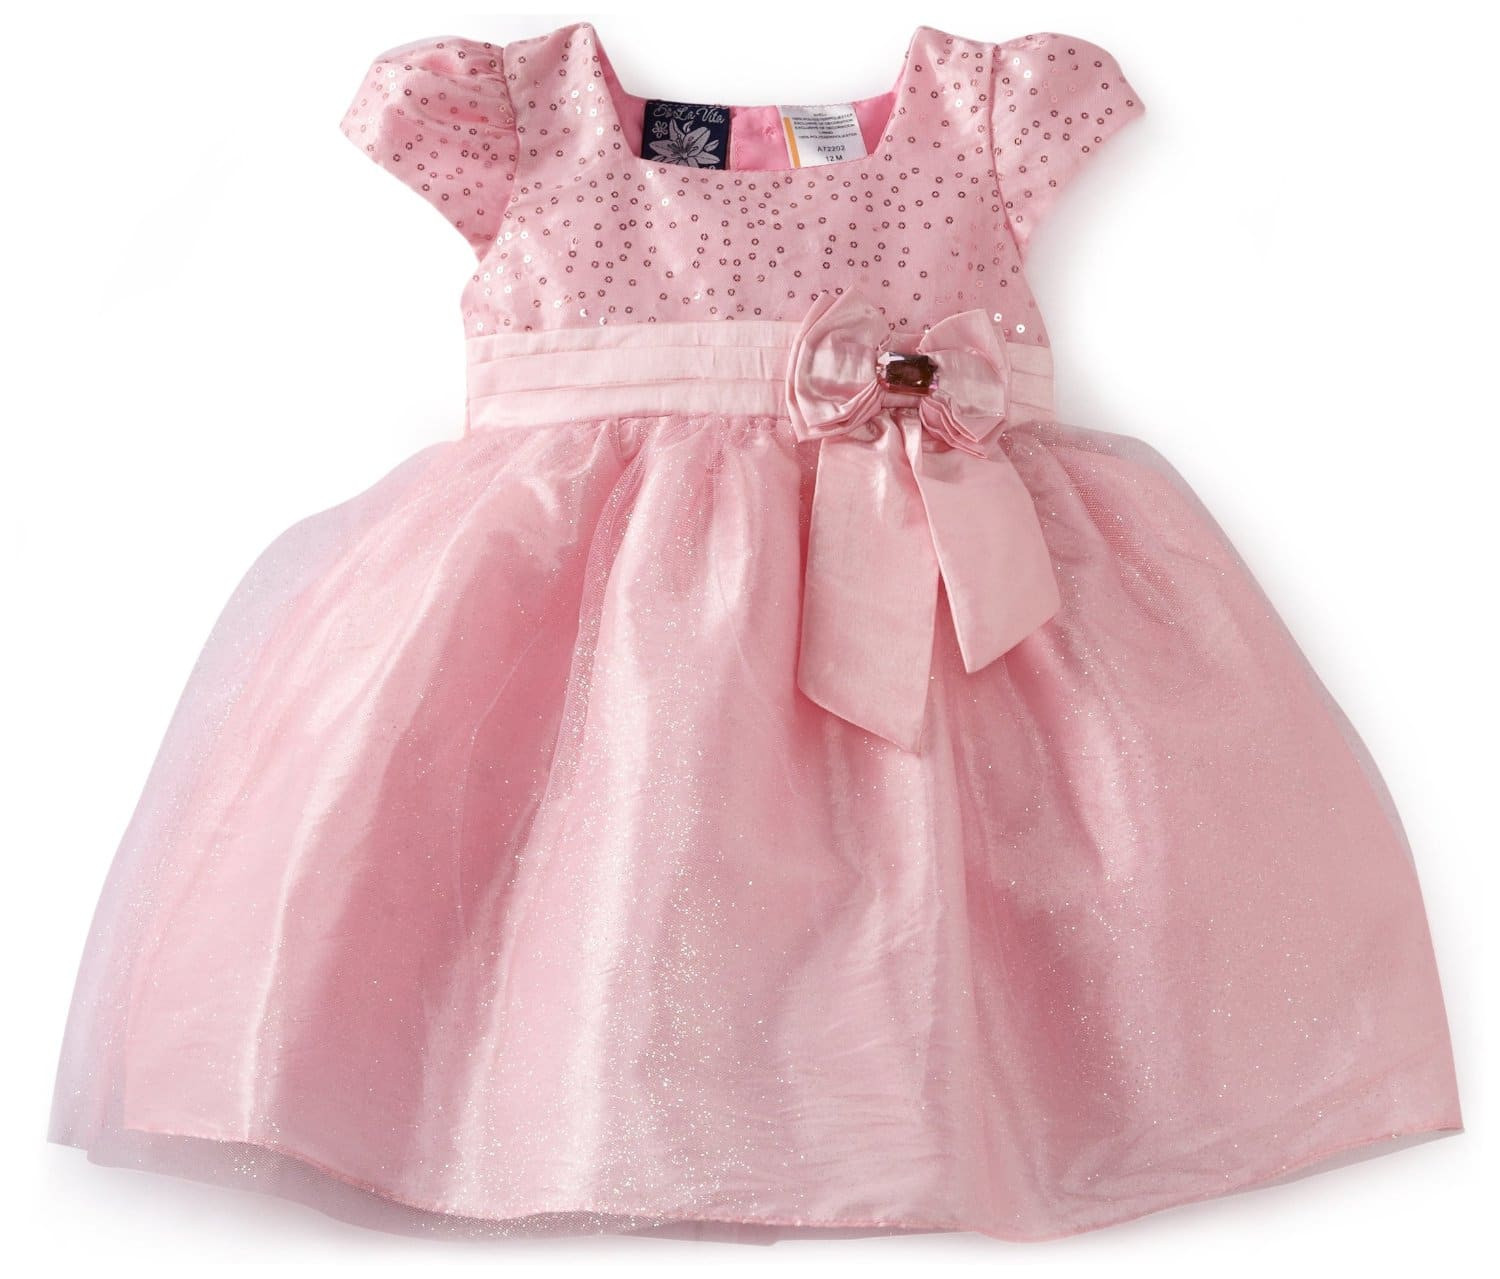 Baby Girl Dresses Inspirational Baby Clothes for Girls Of Great 42 Pics Baby Girl Dresses